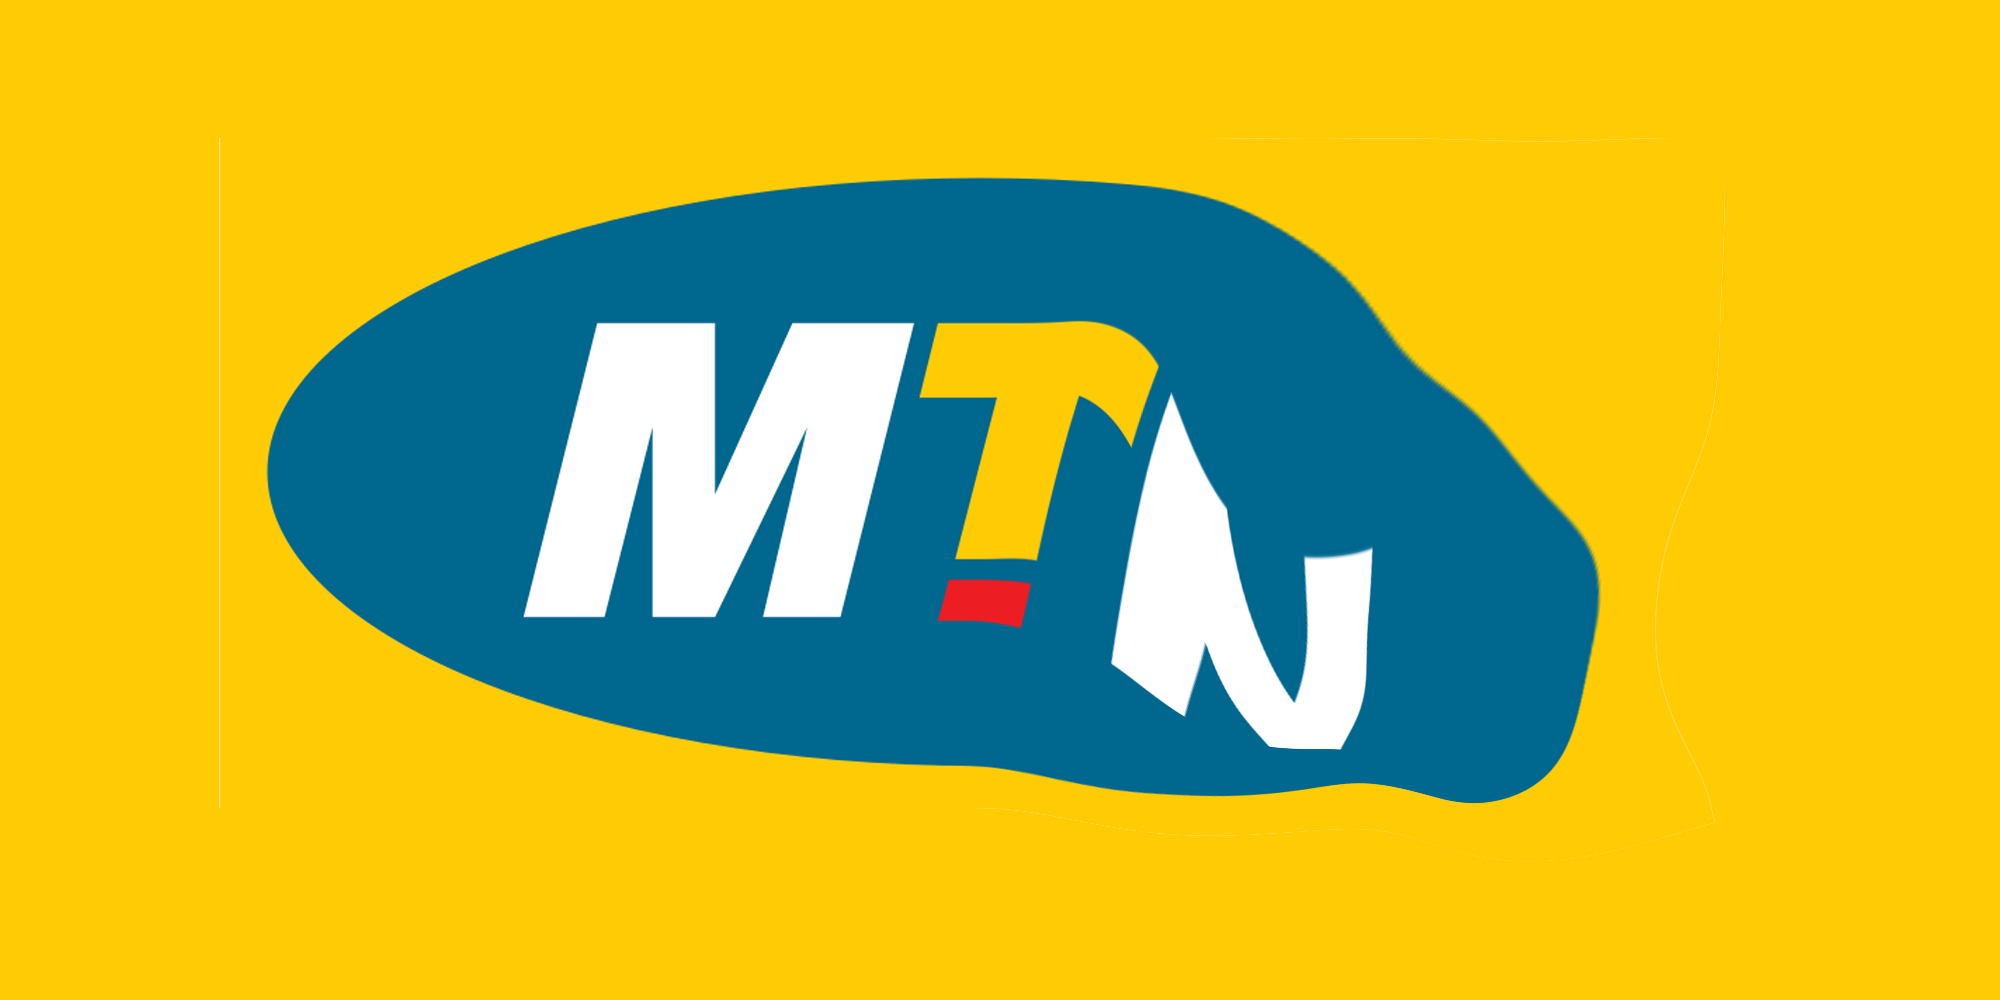 MTN scores a dismal 16% for data security in global accountability index